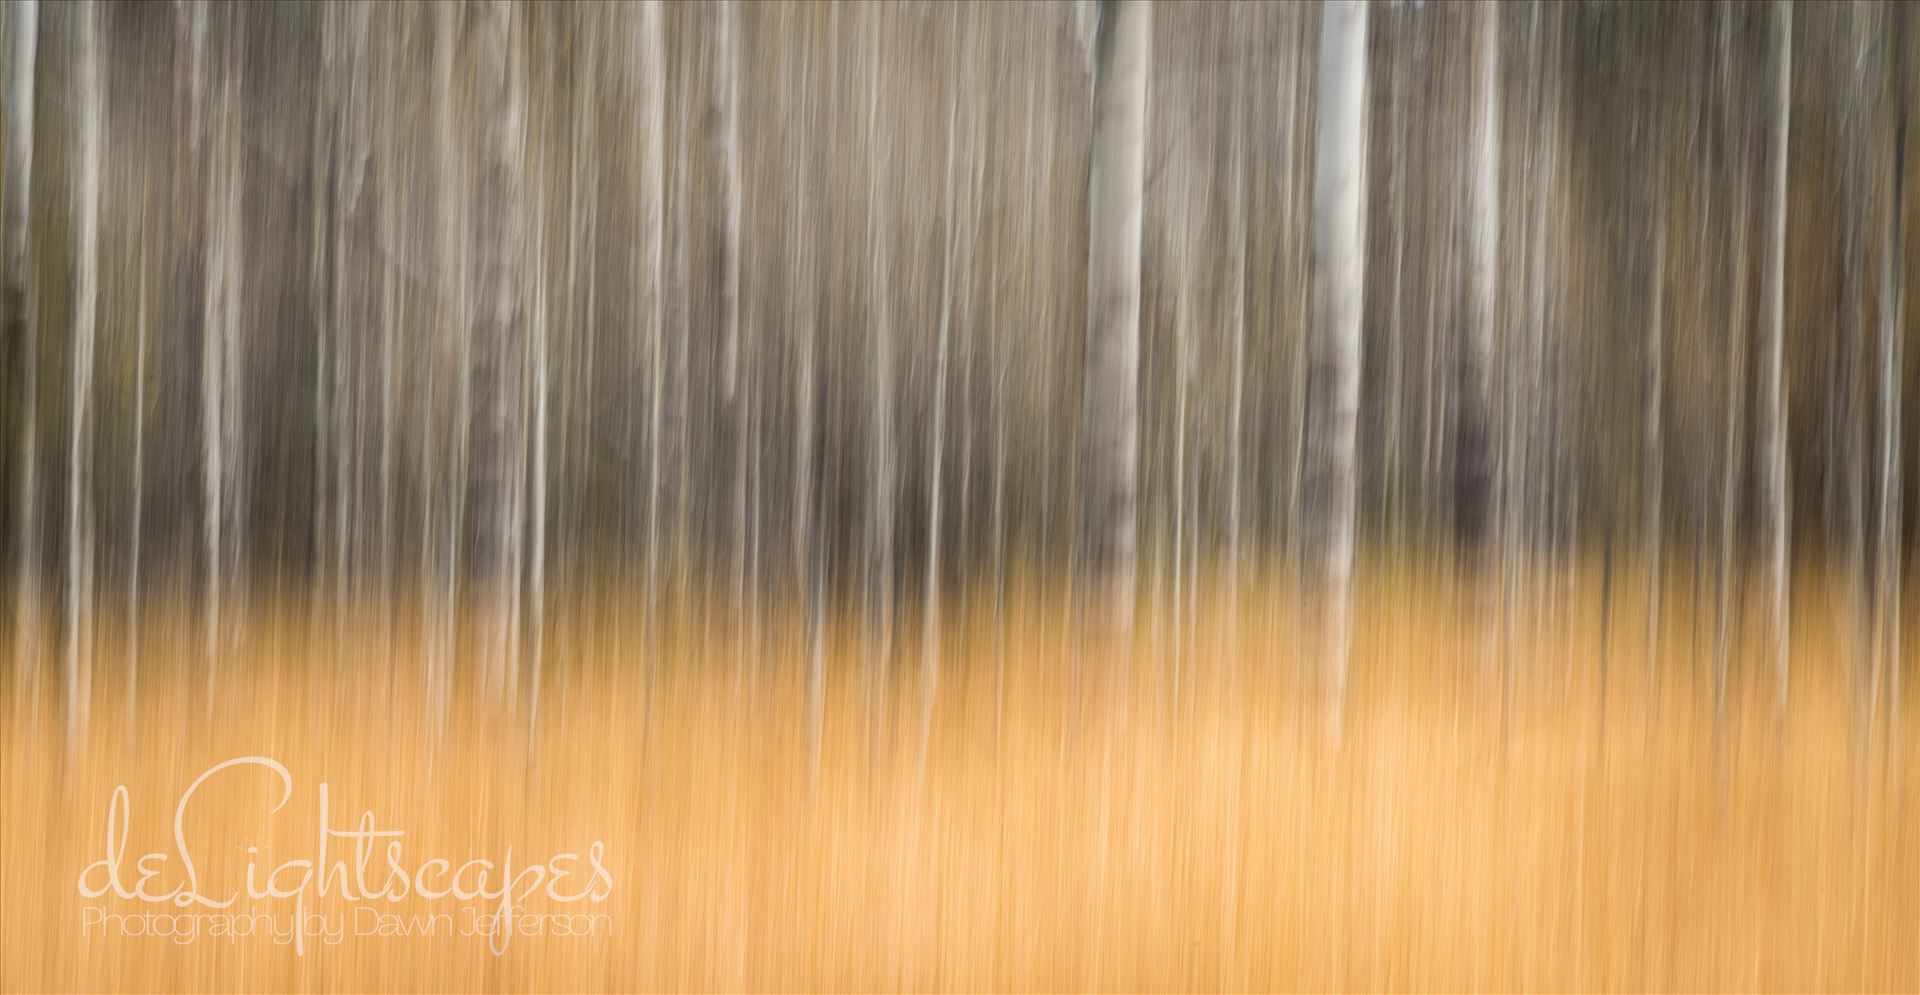 Bare Aspen - Intentional Camera Movement (ICM) - purposeful movement of the camera while the shutter is open causing intentional blurring of your subject. This is one of my favorite techniques for making dreamy abstracts. by Dawn Jefferson